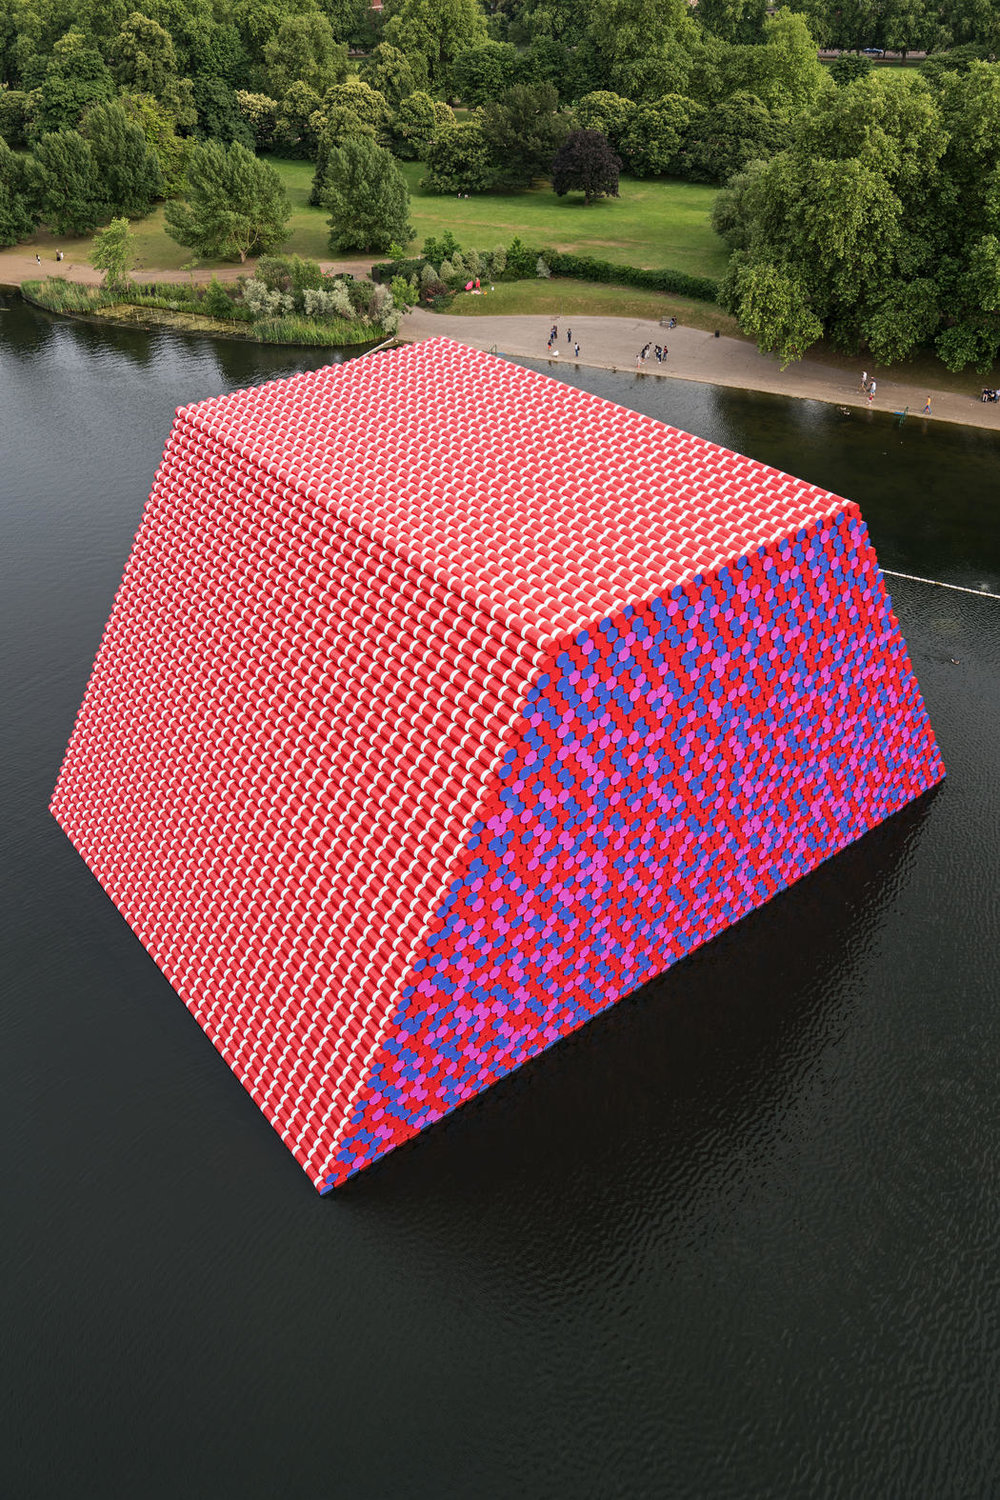 Christo and Jeanne-Claude. The London Mastaba, Serpentine Lake, Hyde Park, 2016-18. Photo Wolfgang Volz © 2018 Christo